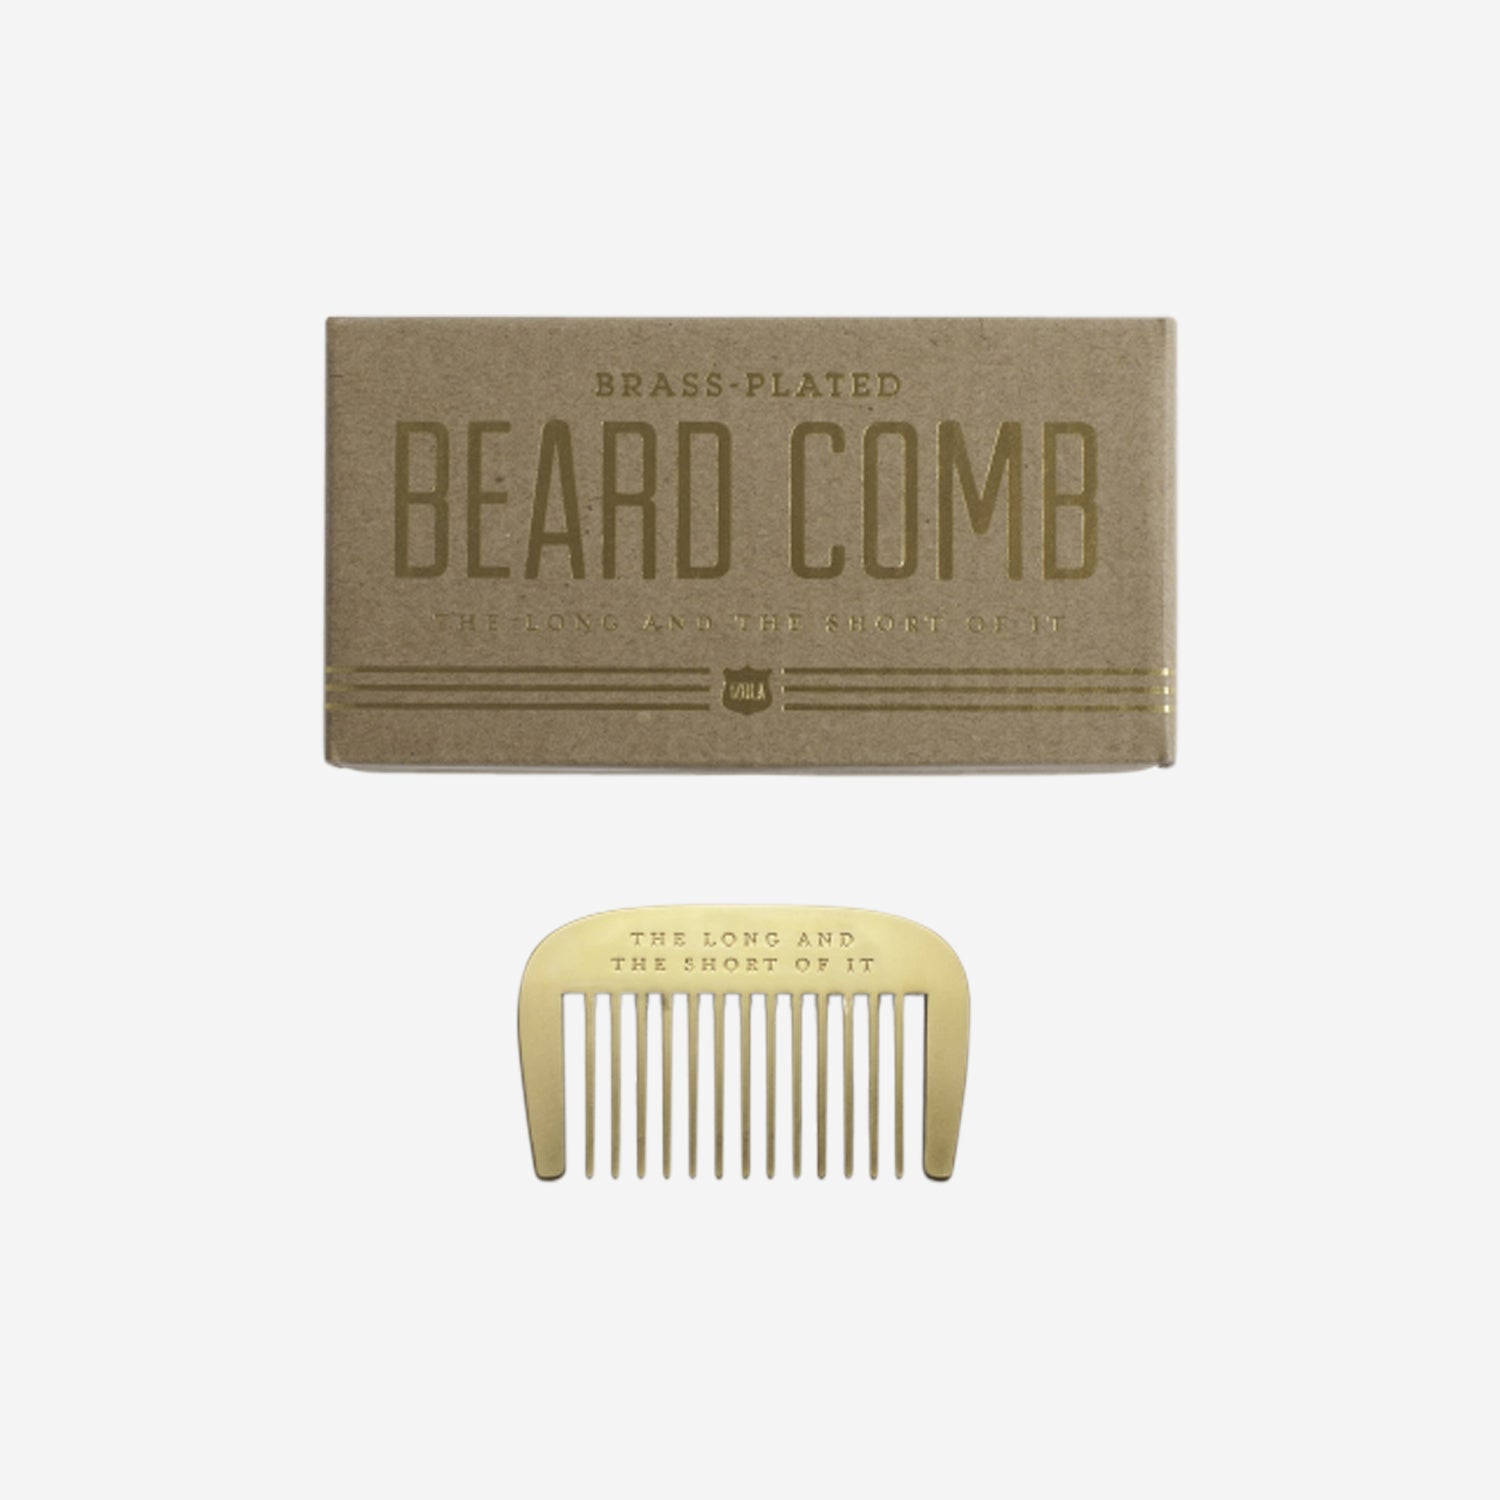 The Long & Short of it Beard Comb